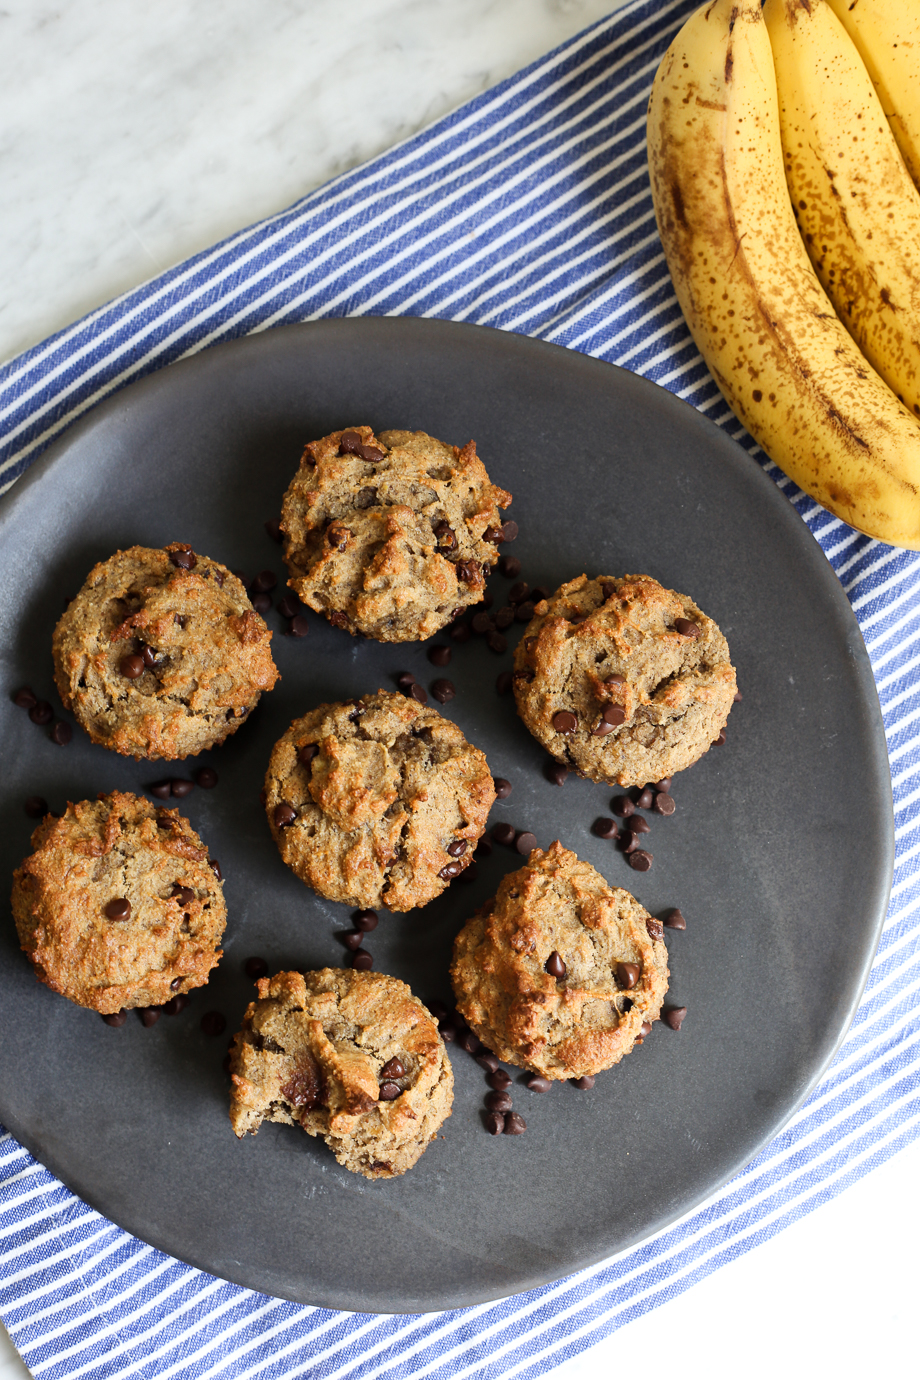 Paleo Protein Banana Muffins with Chocolate Chips